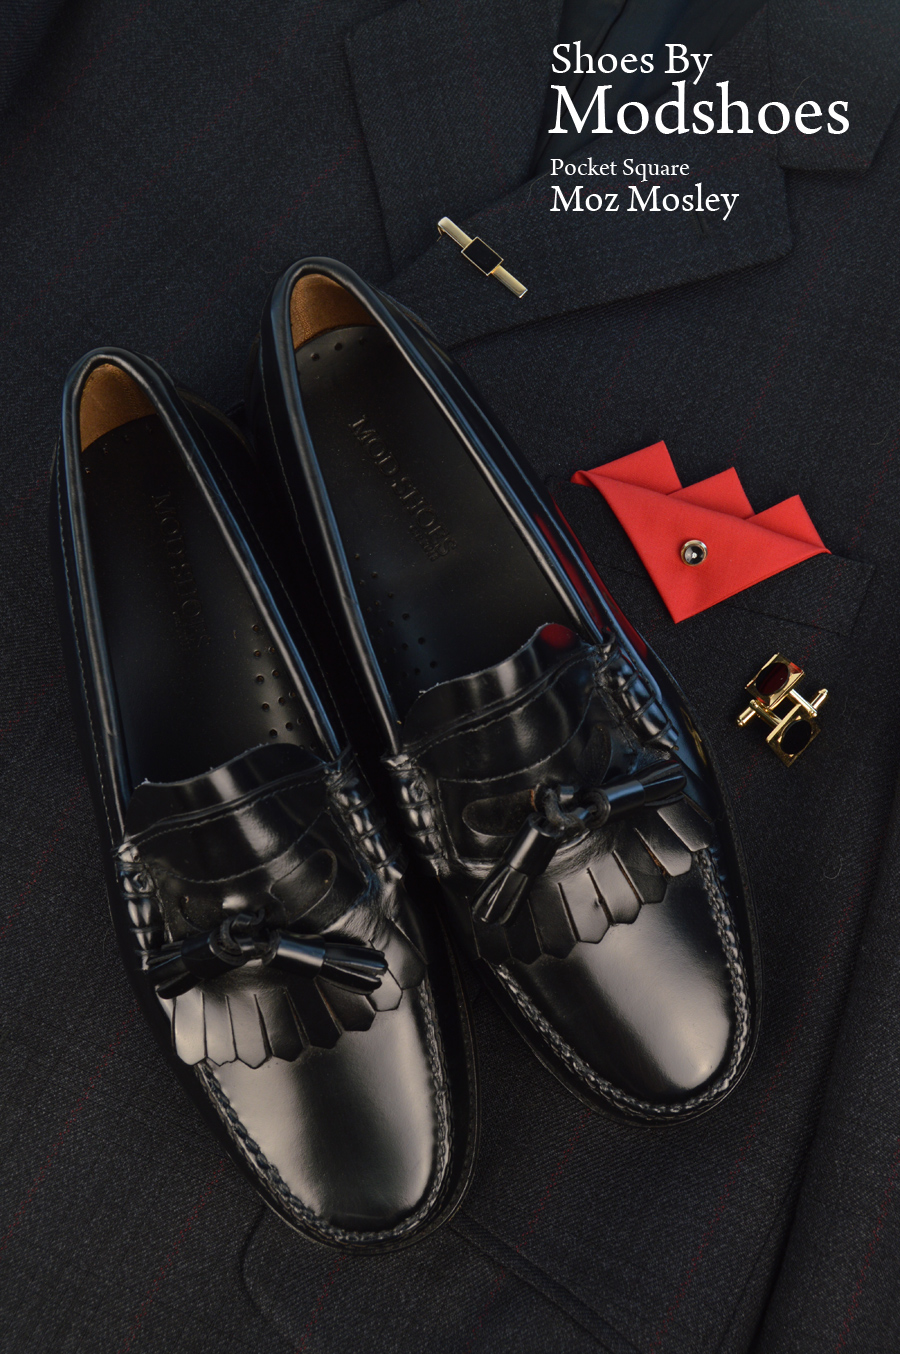 modshoes-black-tassel-loafers-dukes-with-pocket-square-01